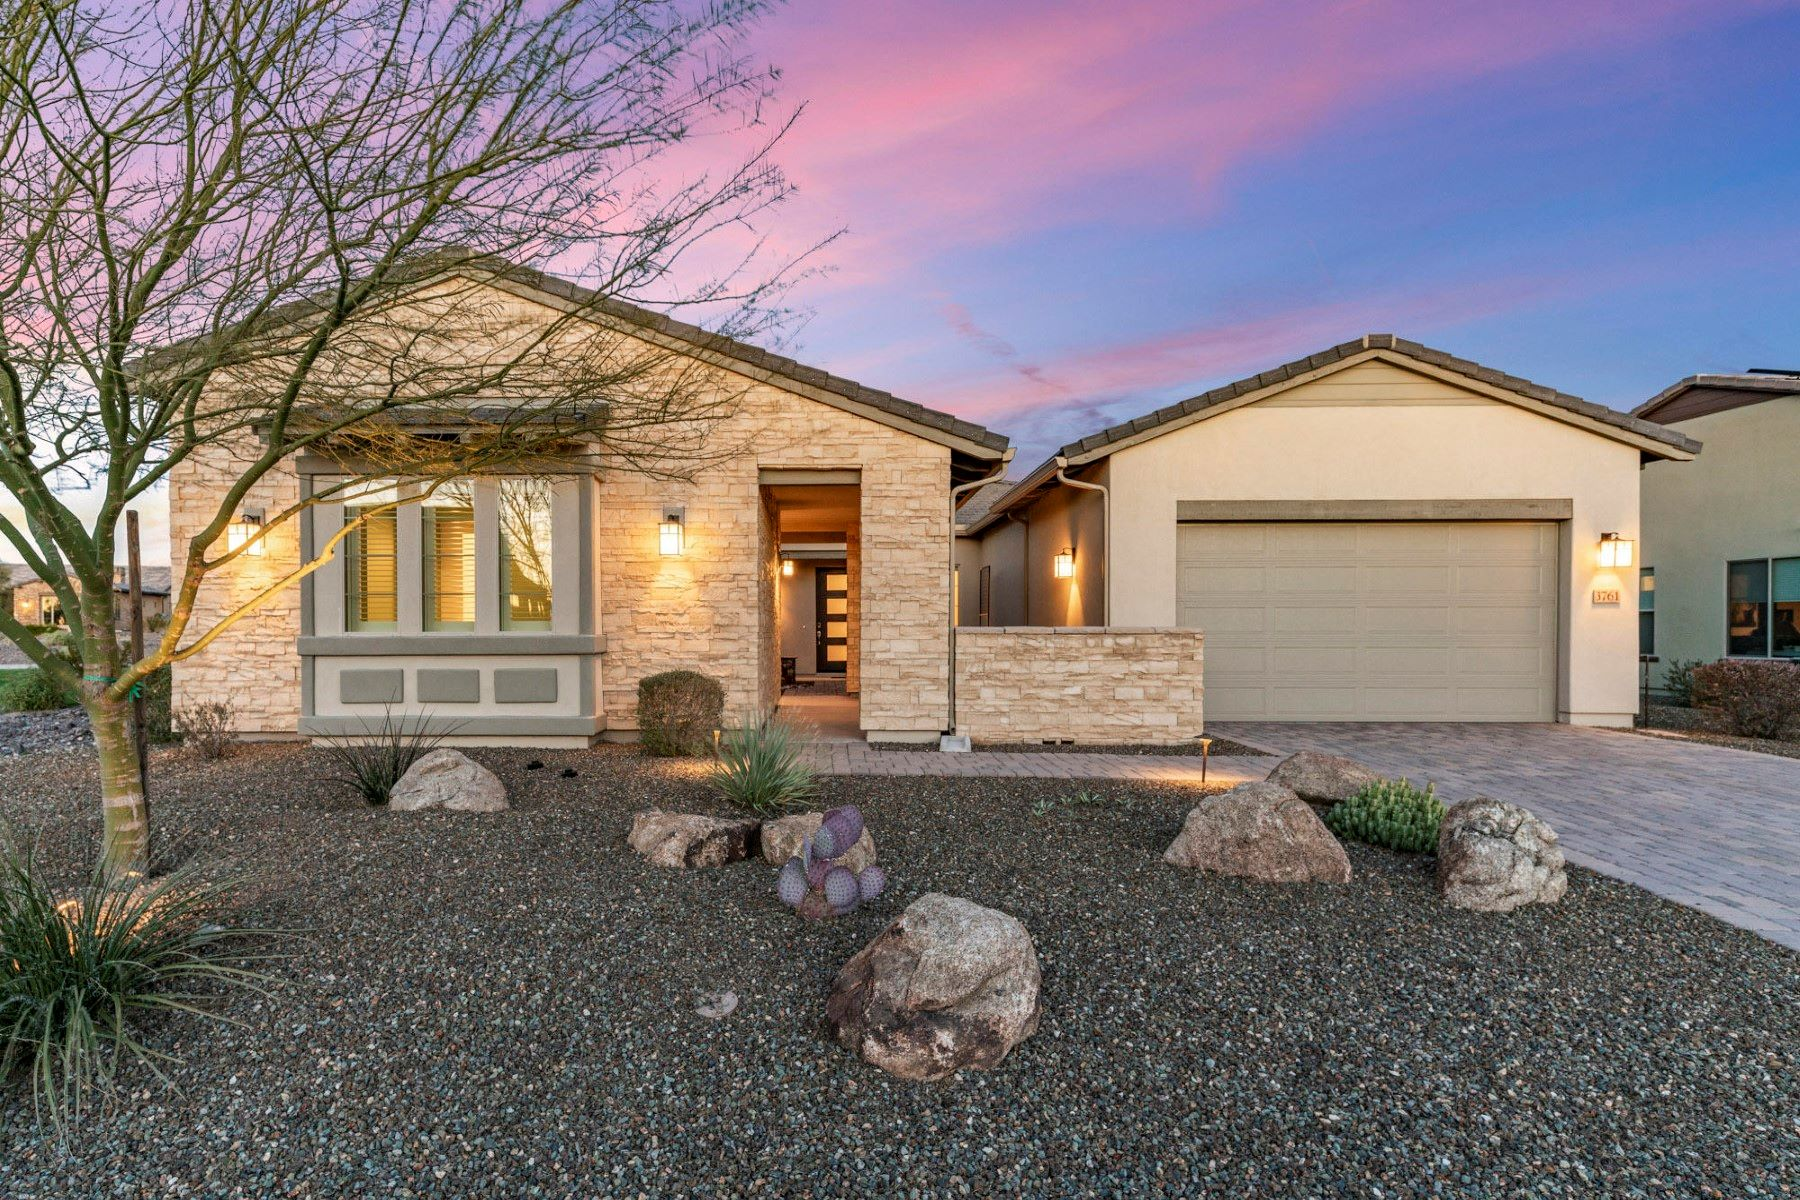 Single Family Homes for Active at Wickenburg Ranch 3761 GOLD RUSH CT Wickenburg, Arizona 85390 United States